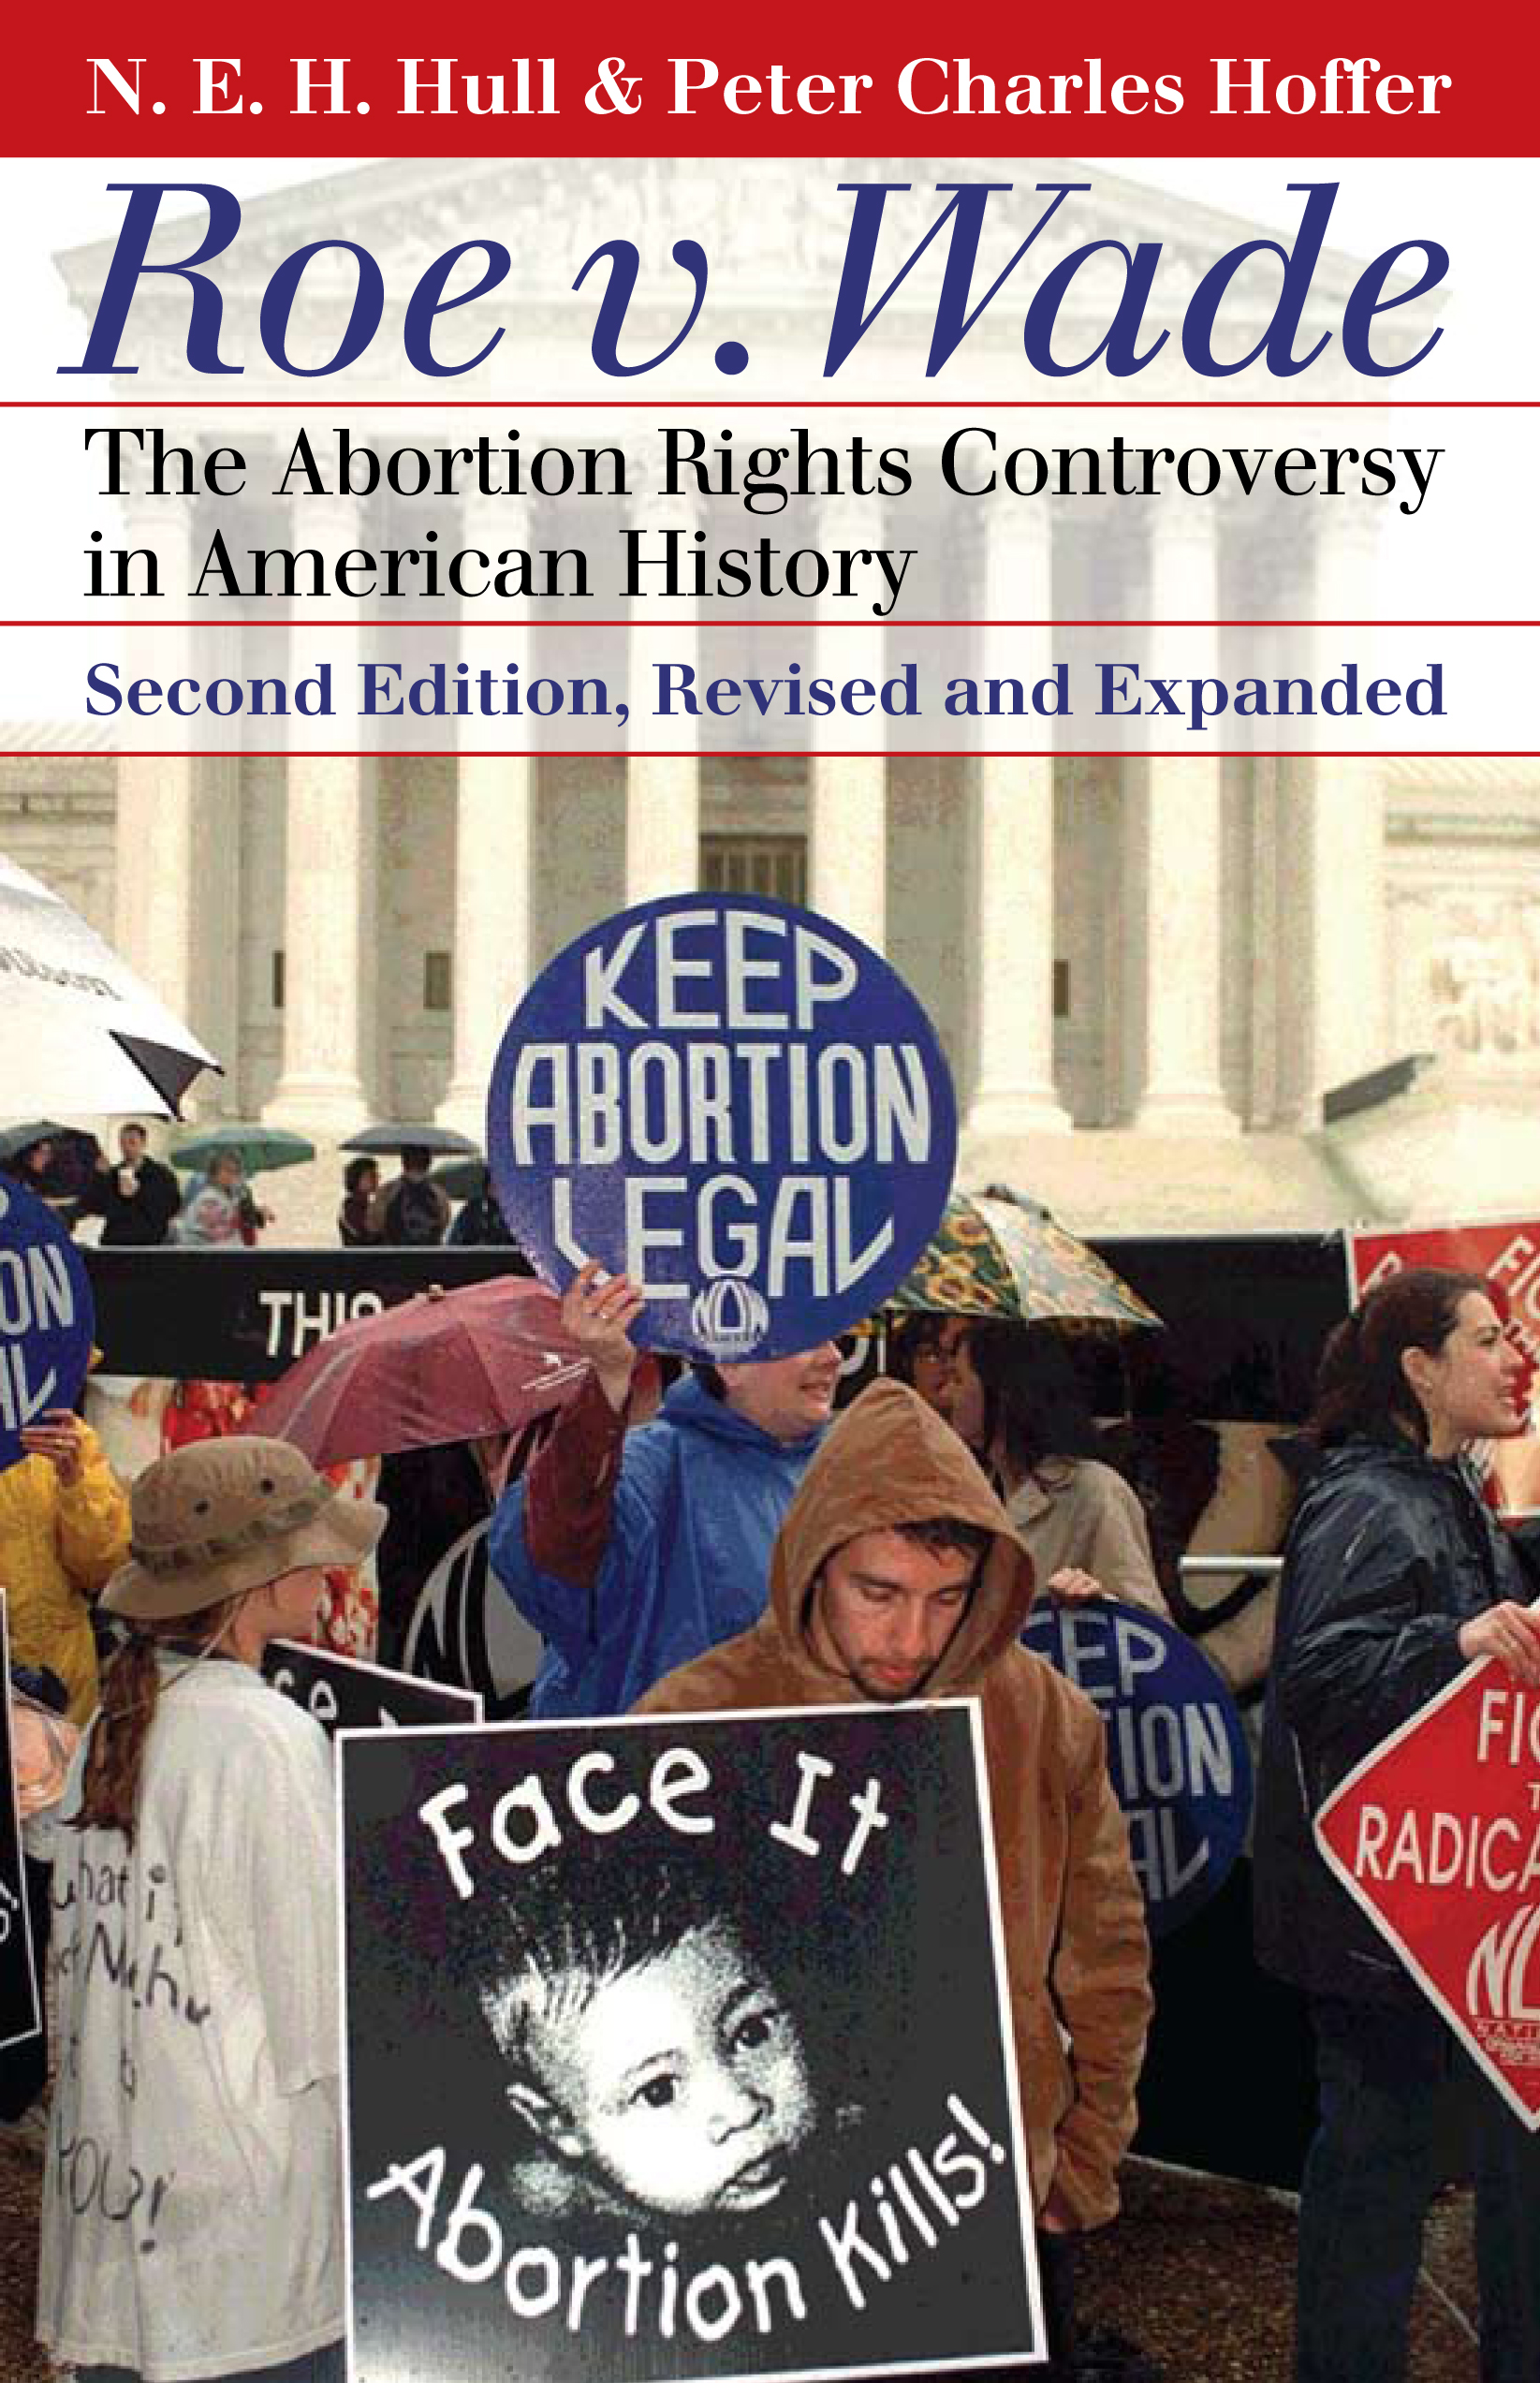 a review of the 1973 supreme court case roe vs walde Roe v wade (1973) ruled unconstitutional a state law that banned abortions  except to  wade appealed to the us supreme court, which reviewed the case .